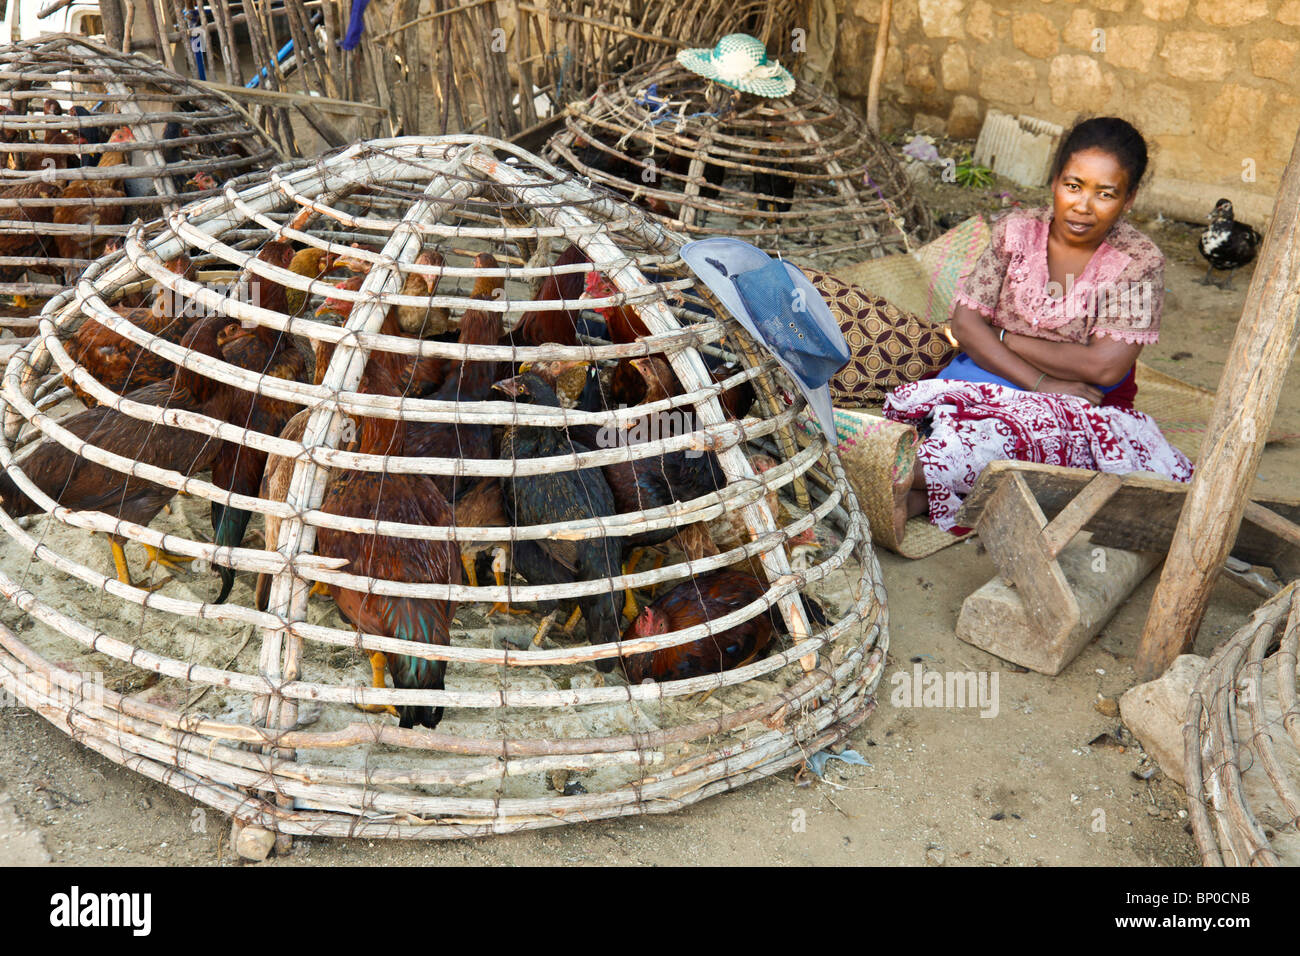 Woman selling hens from a basket at the market in Toliara aka Toliary fka Tulear, south east Madagascar - Stock Image